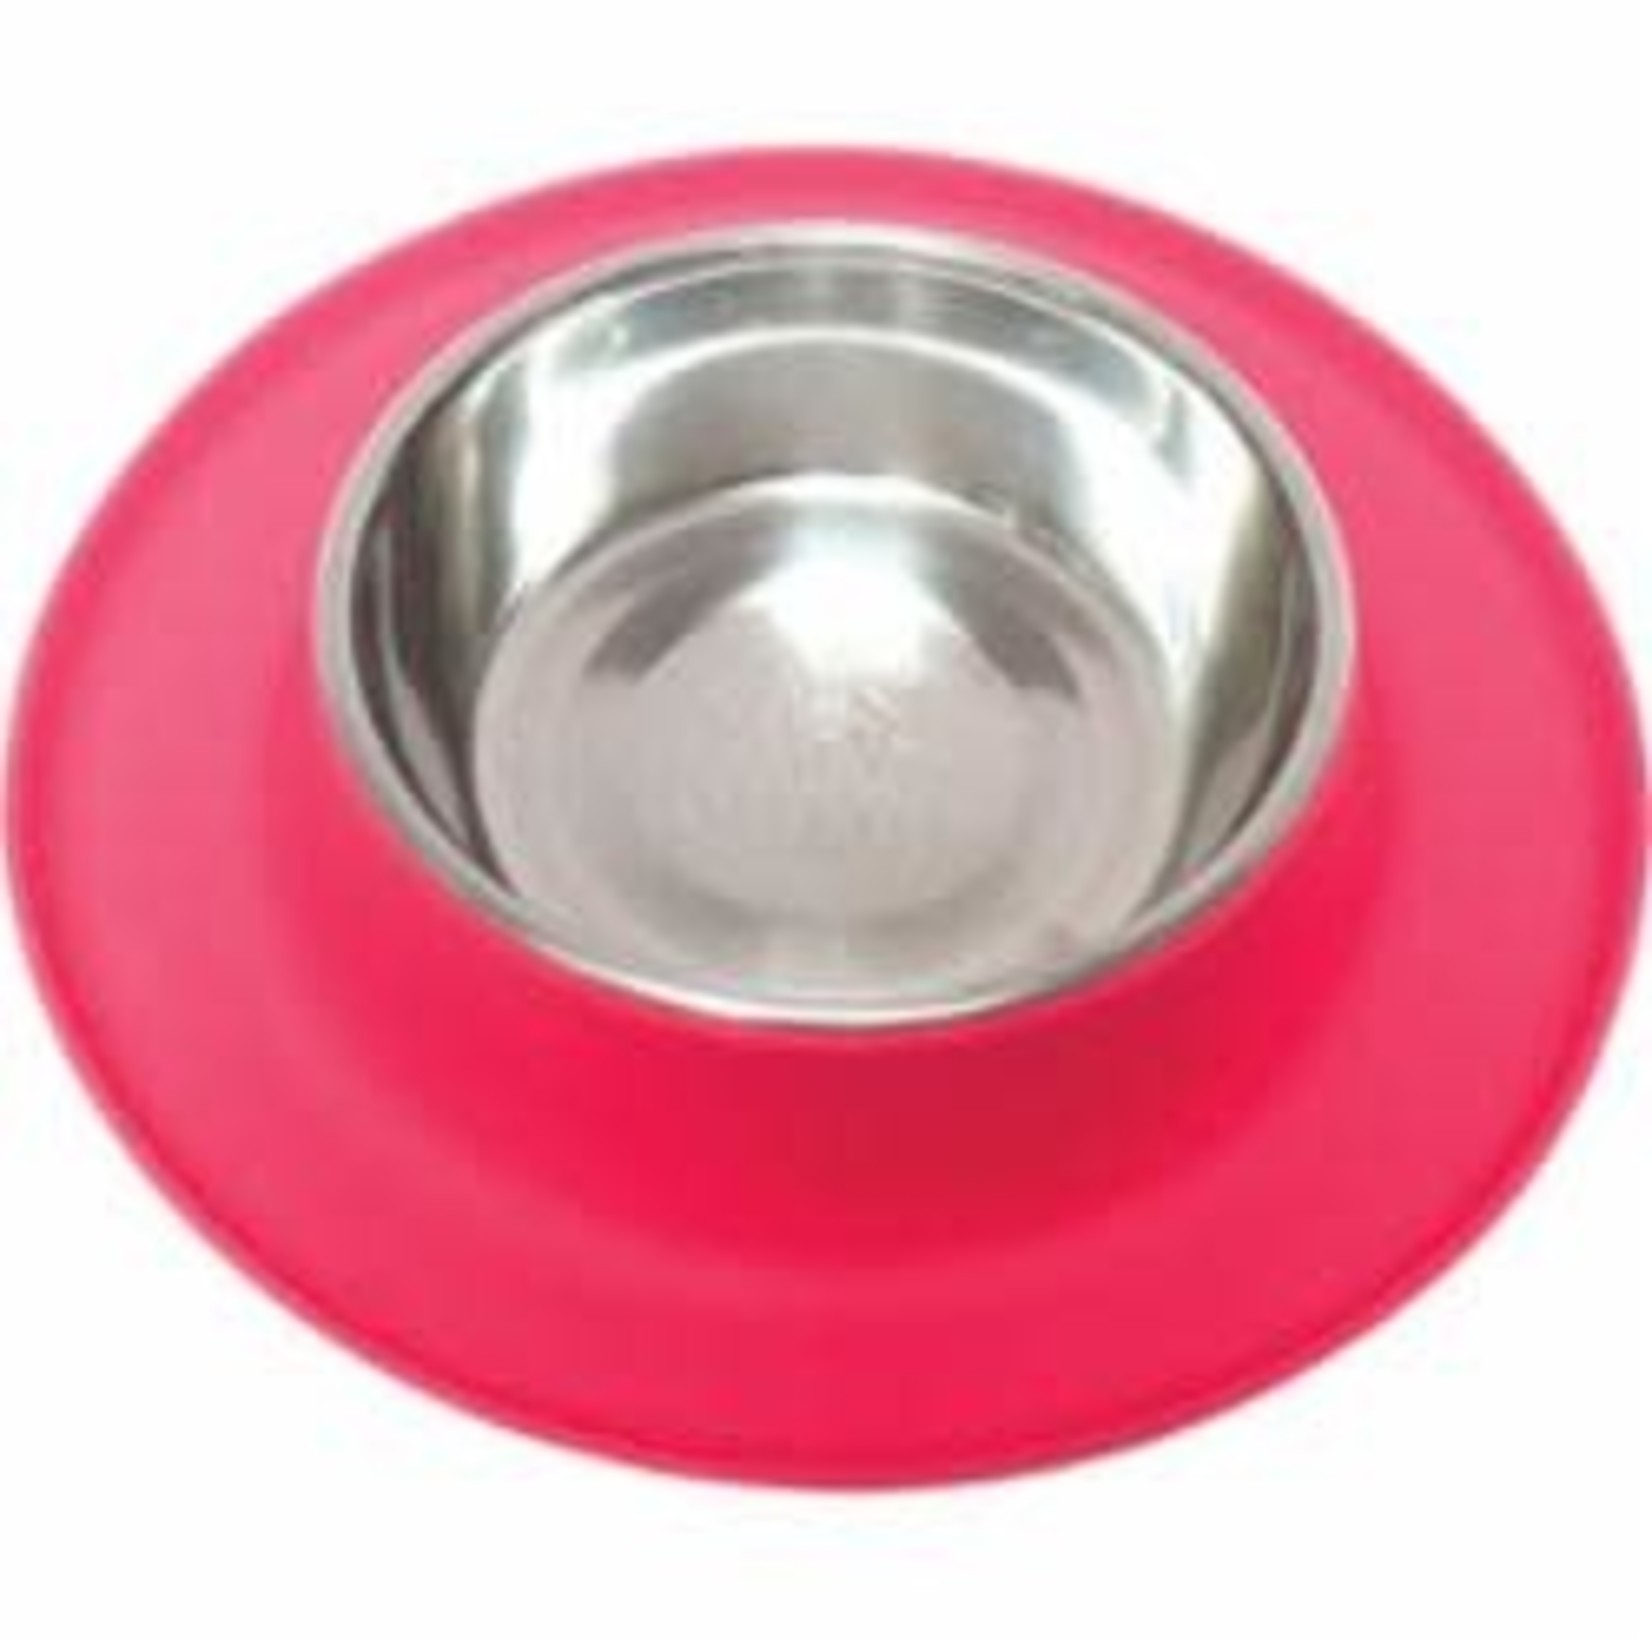 Messy Mutts Messy Mutts Dog  Silicone Feeder Red 1.5 CUP